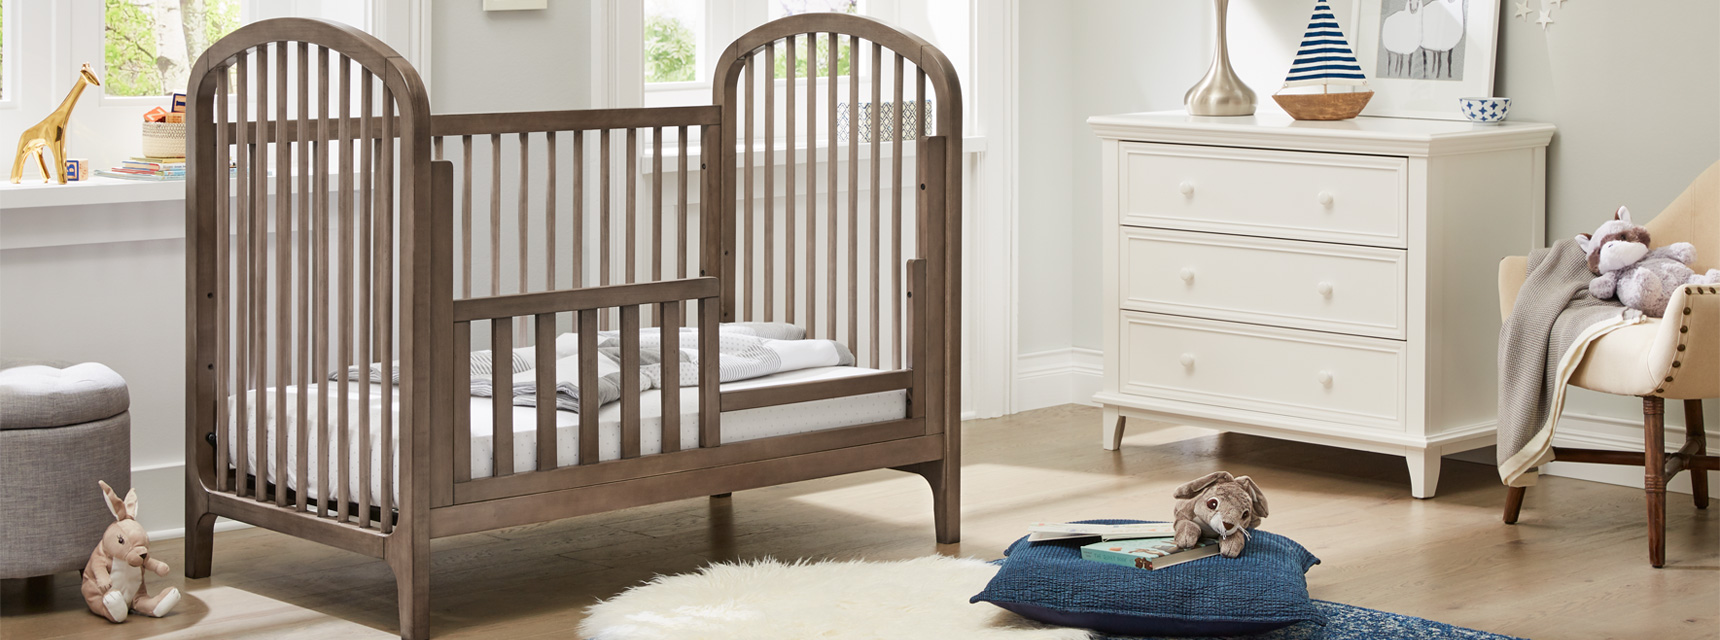 Elston 3 In 1 Toddler Bed And Daybed Conversion Kit Kolcraft